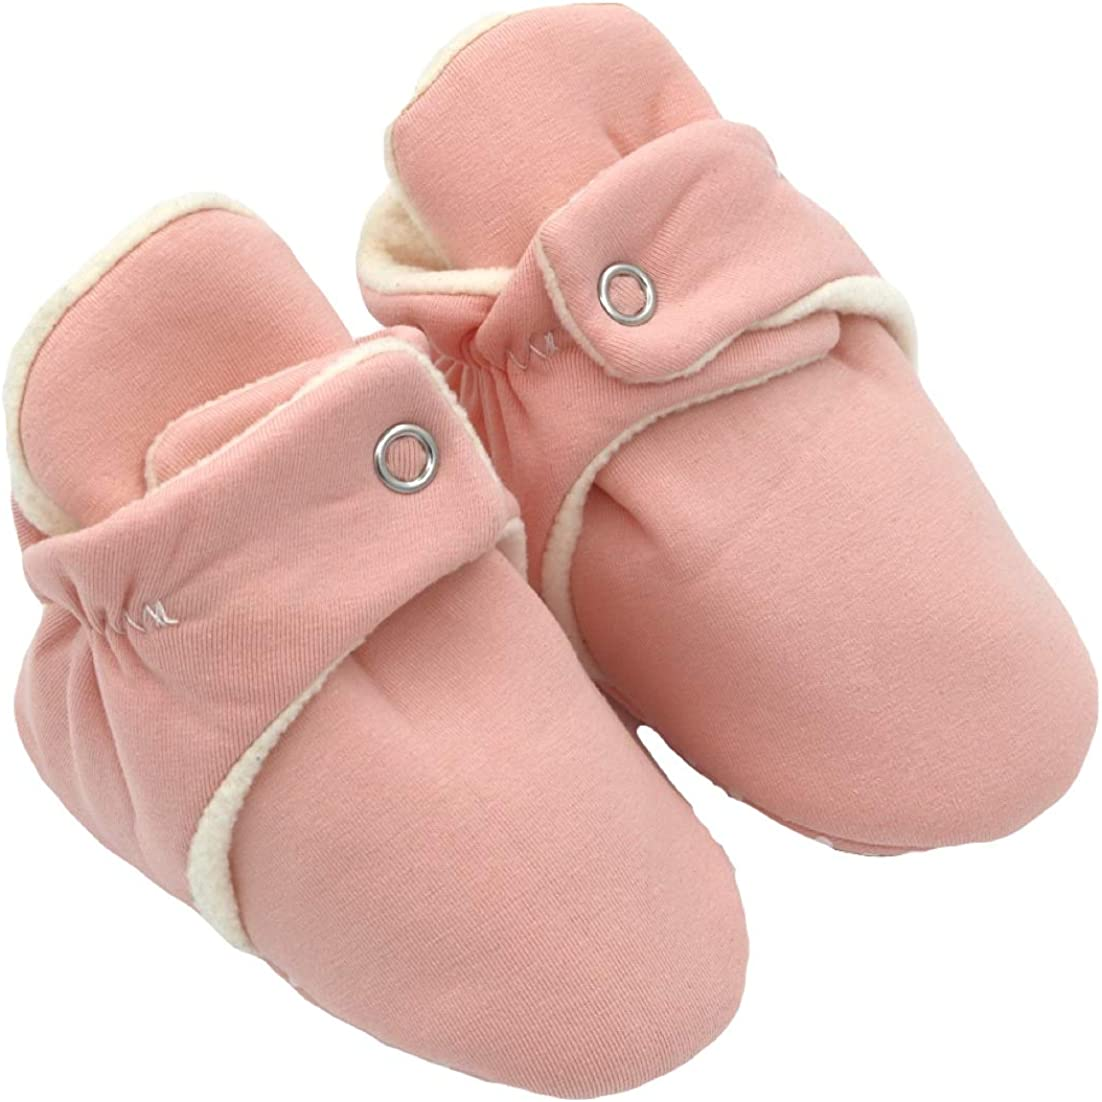 Babalus Booties - 100% Soft Cotton Shoes for Infants, Babies, Toddlers, With Gripper Soles, First Shoes, Stay-on Socks